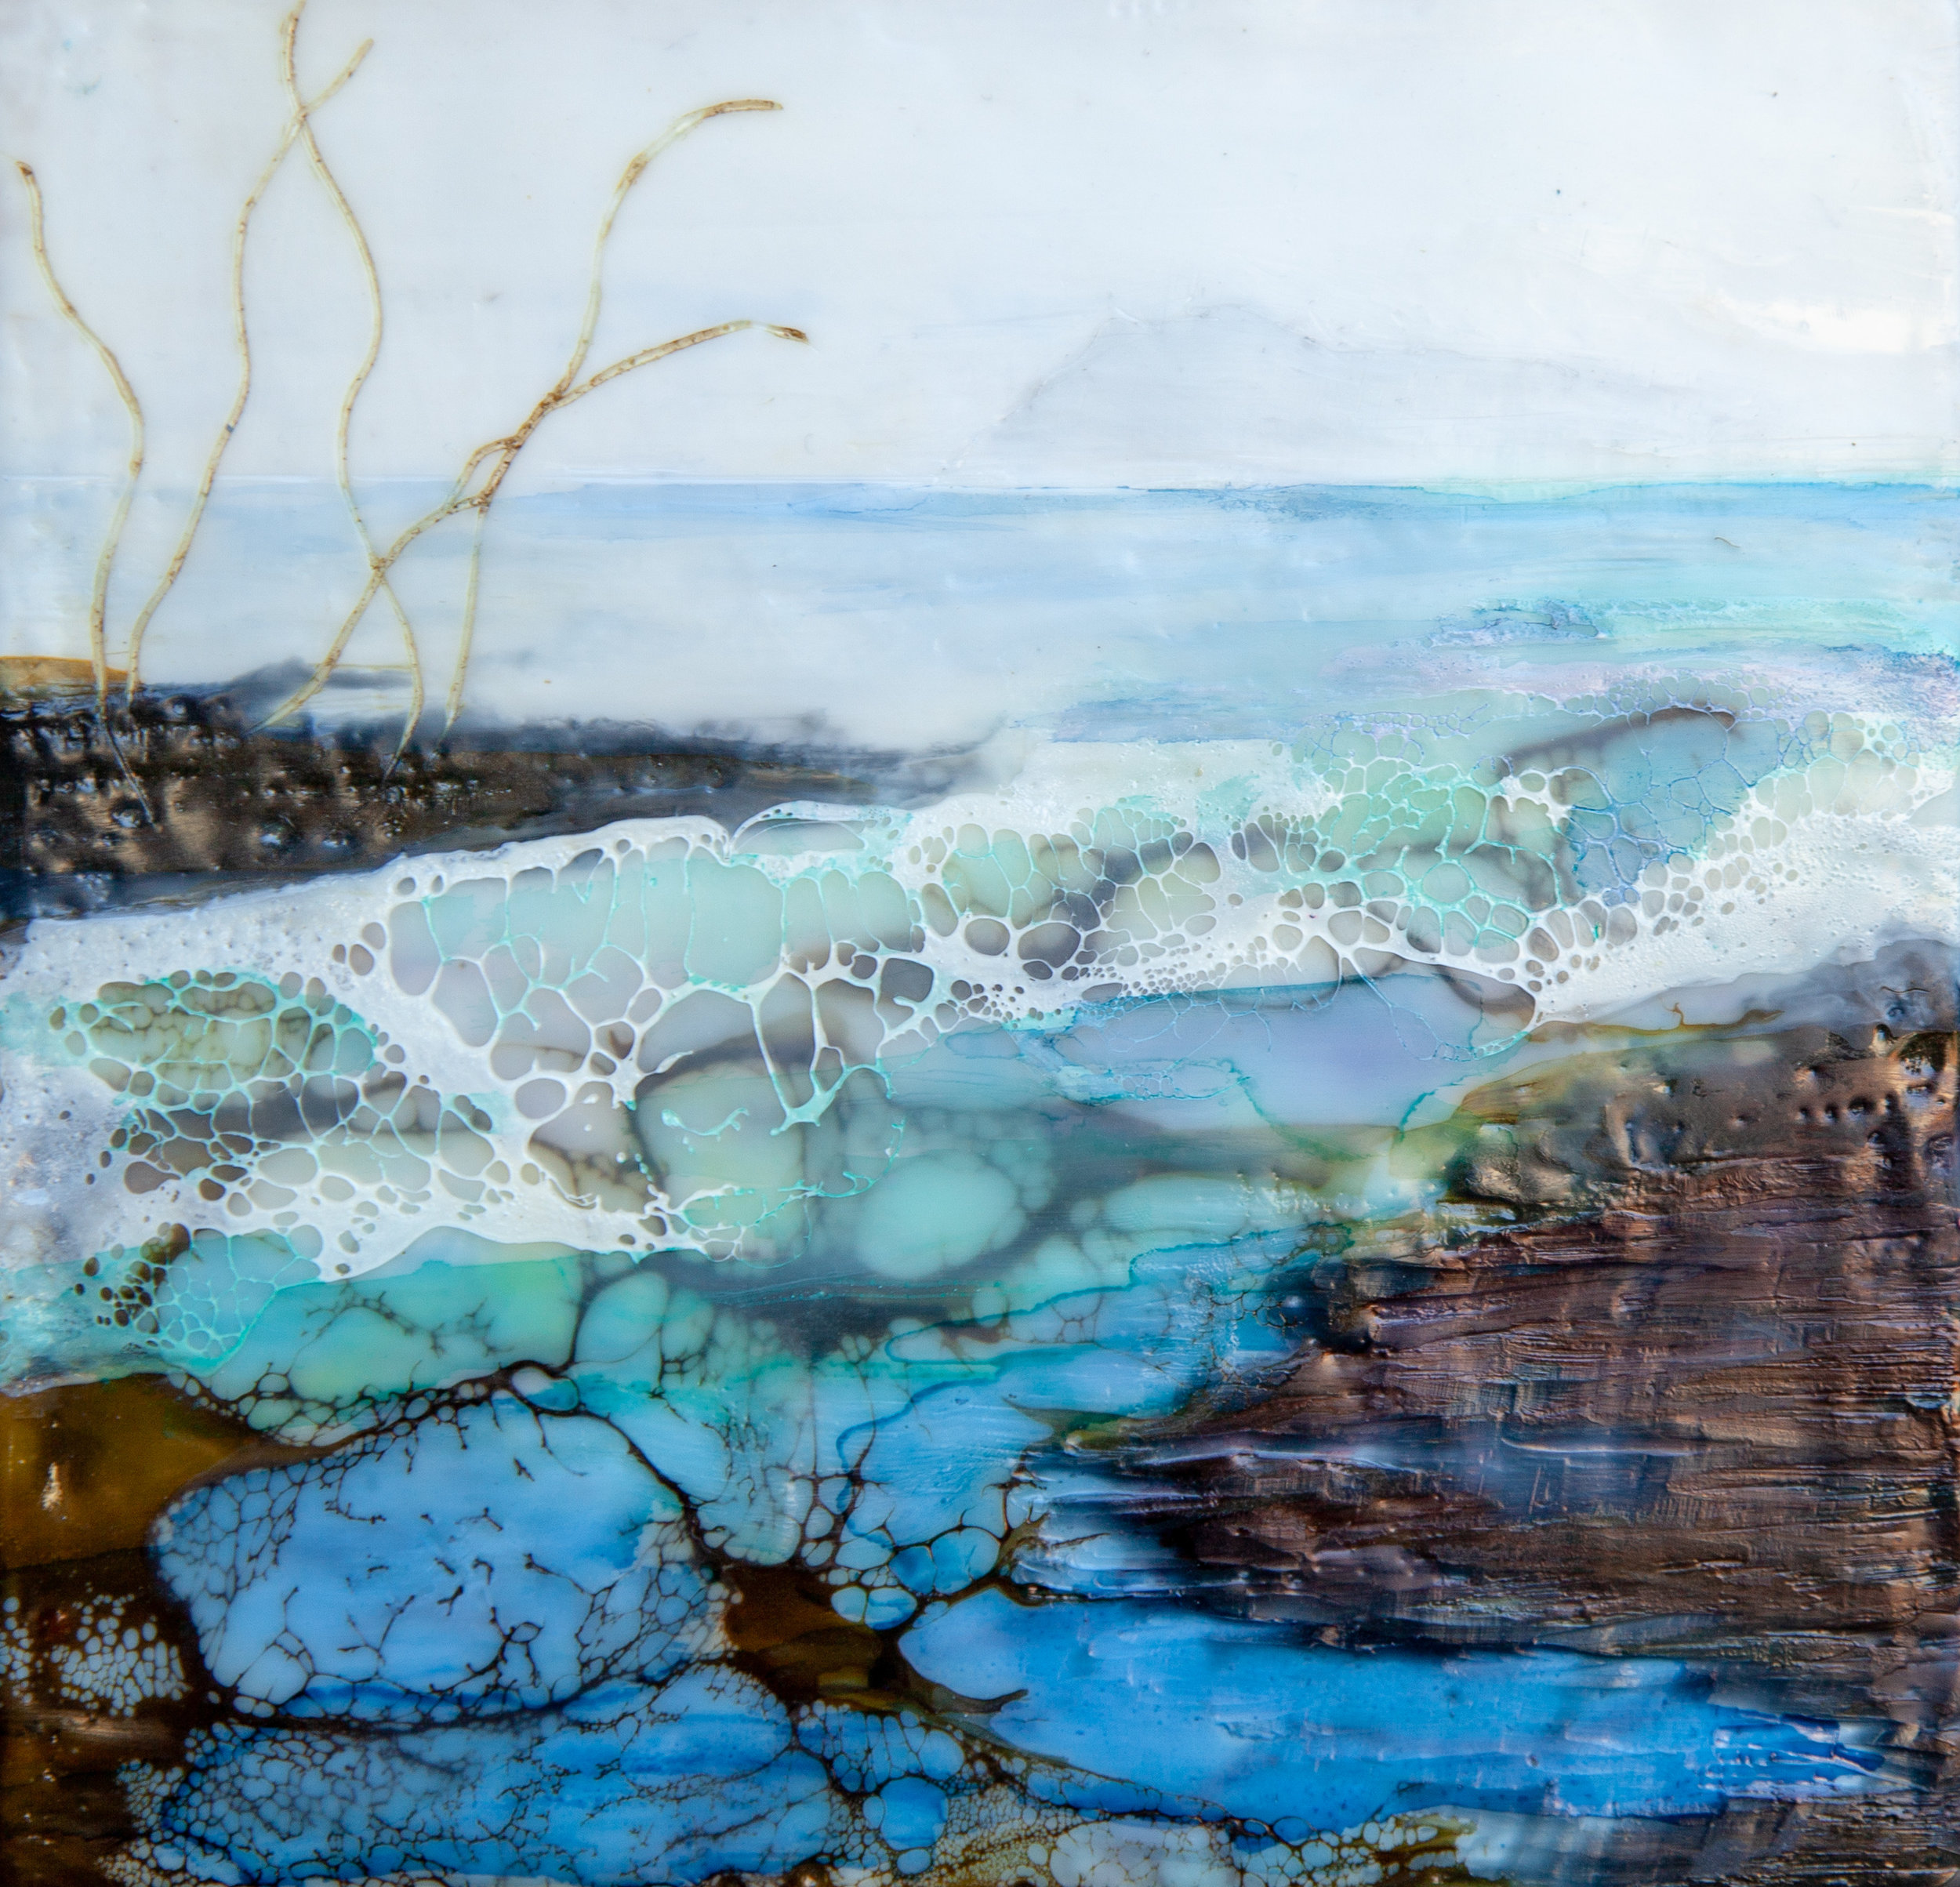 Colin Pratt_Castle Rock_2018_Encaustic & shellac_20x20cm.jpg